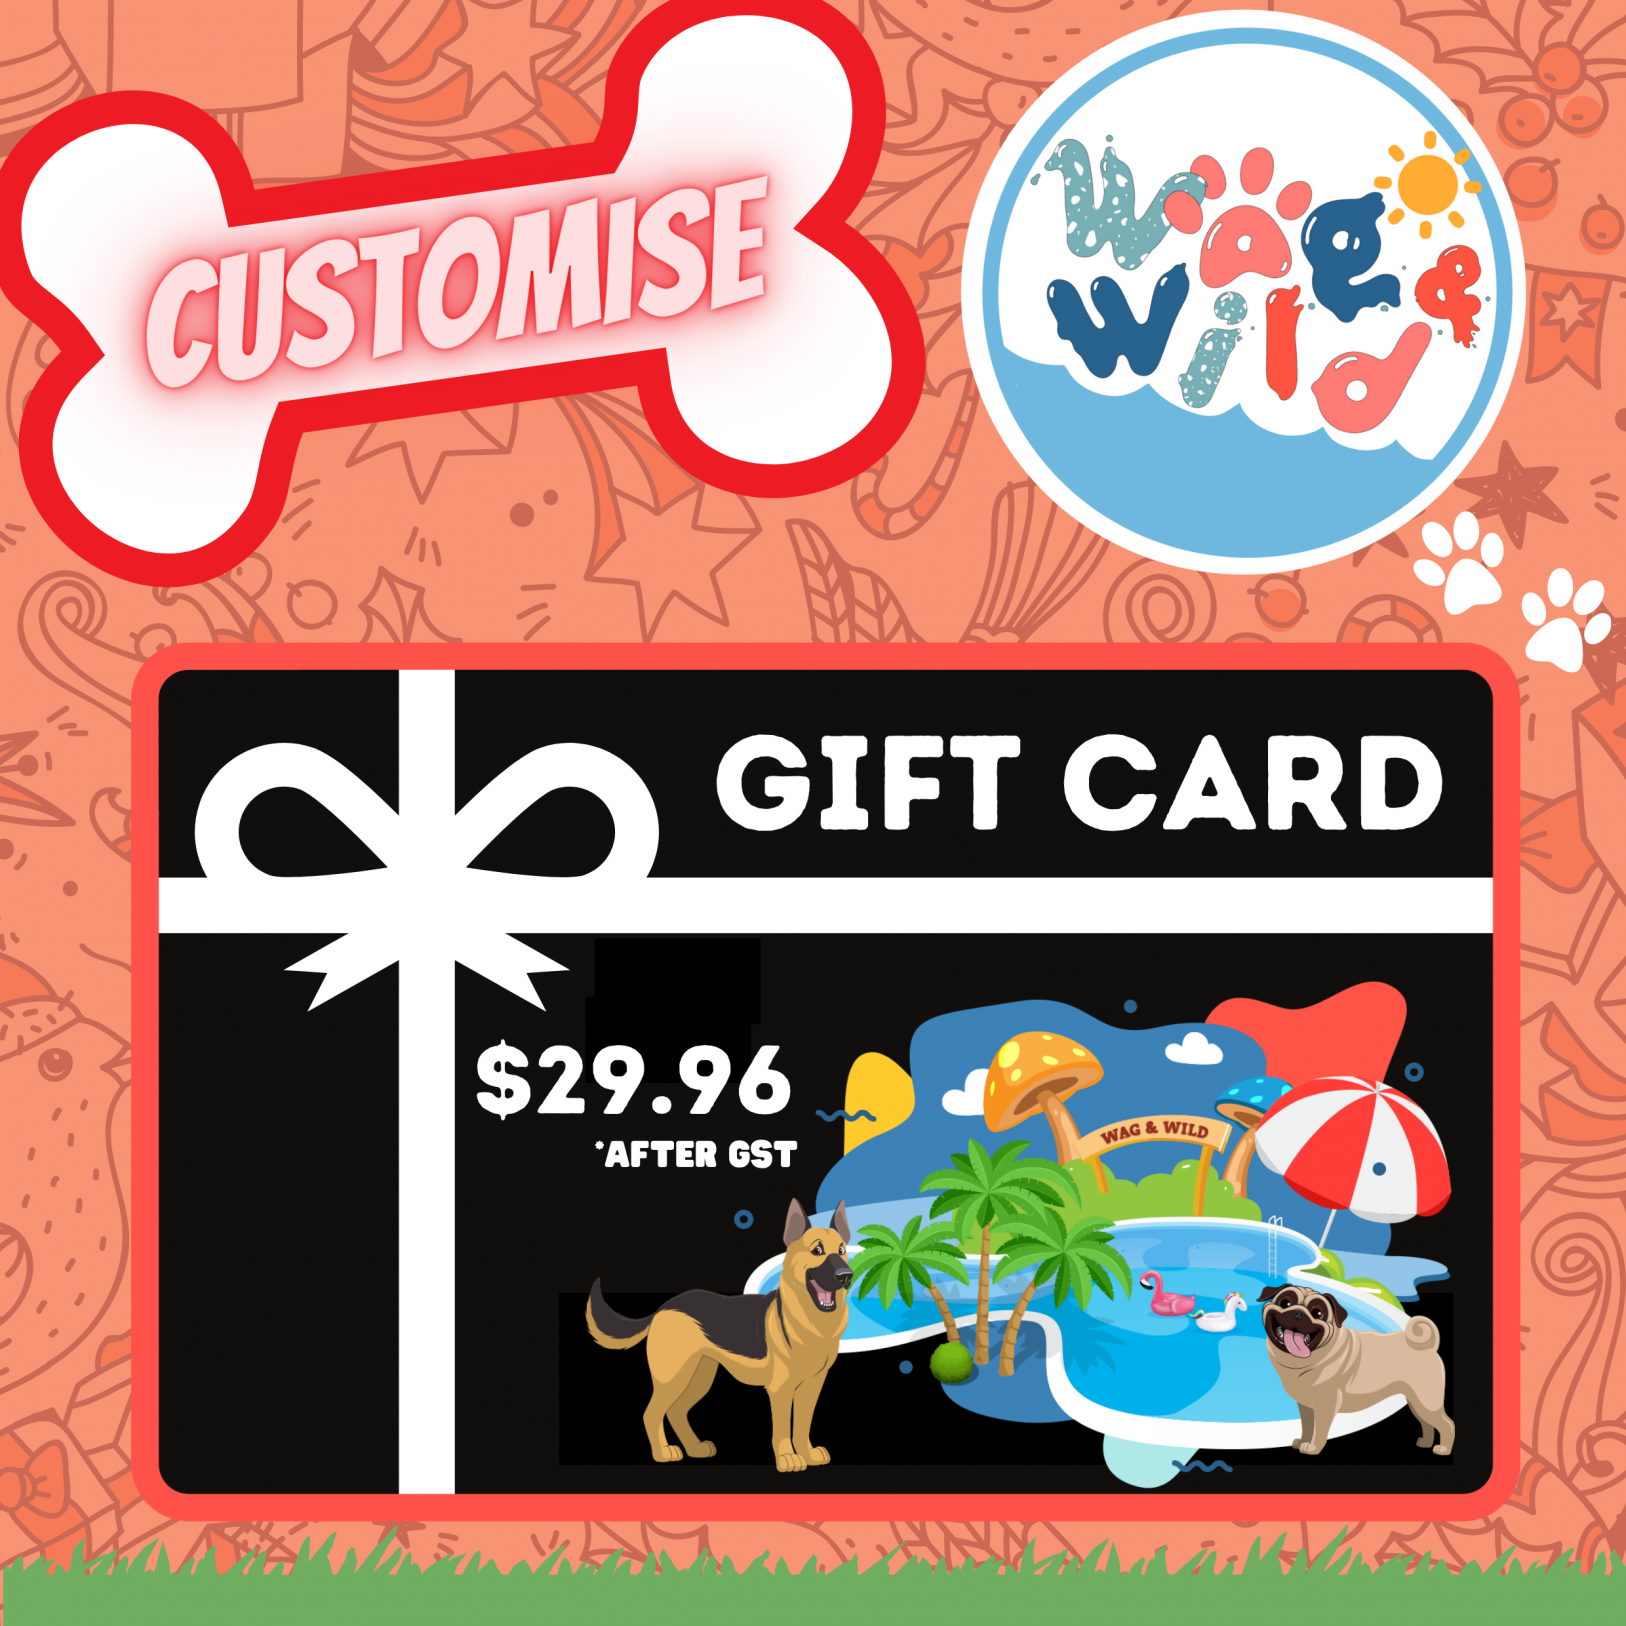 Customised E-Gift Card ($29.96 after GST)